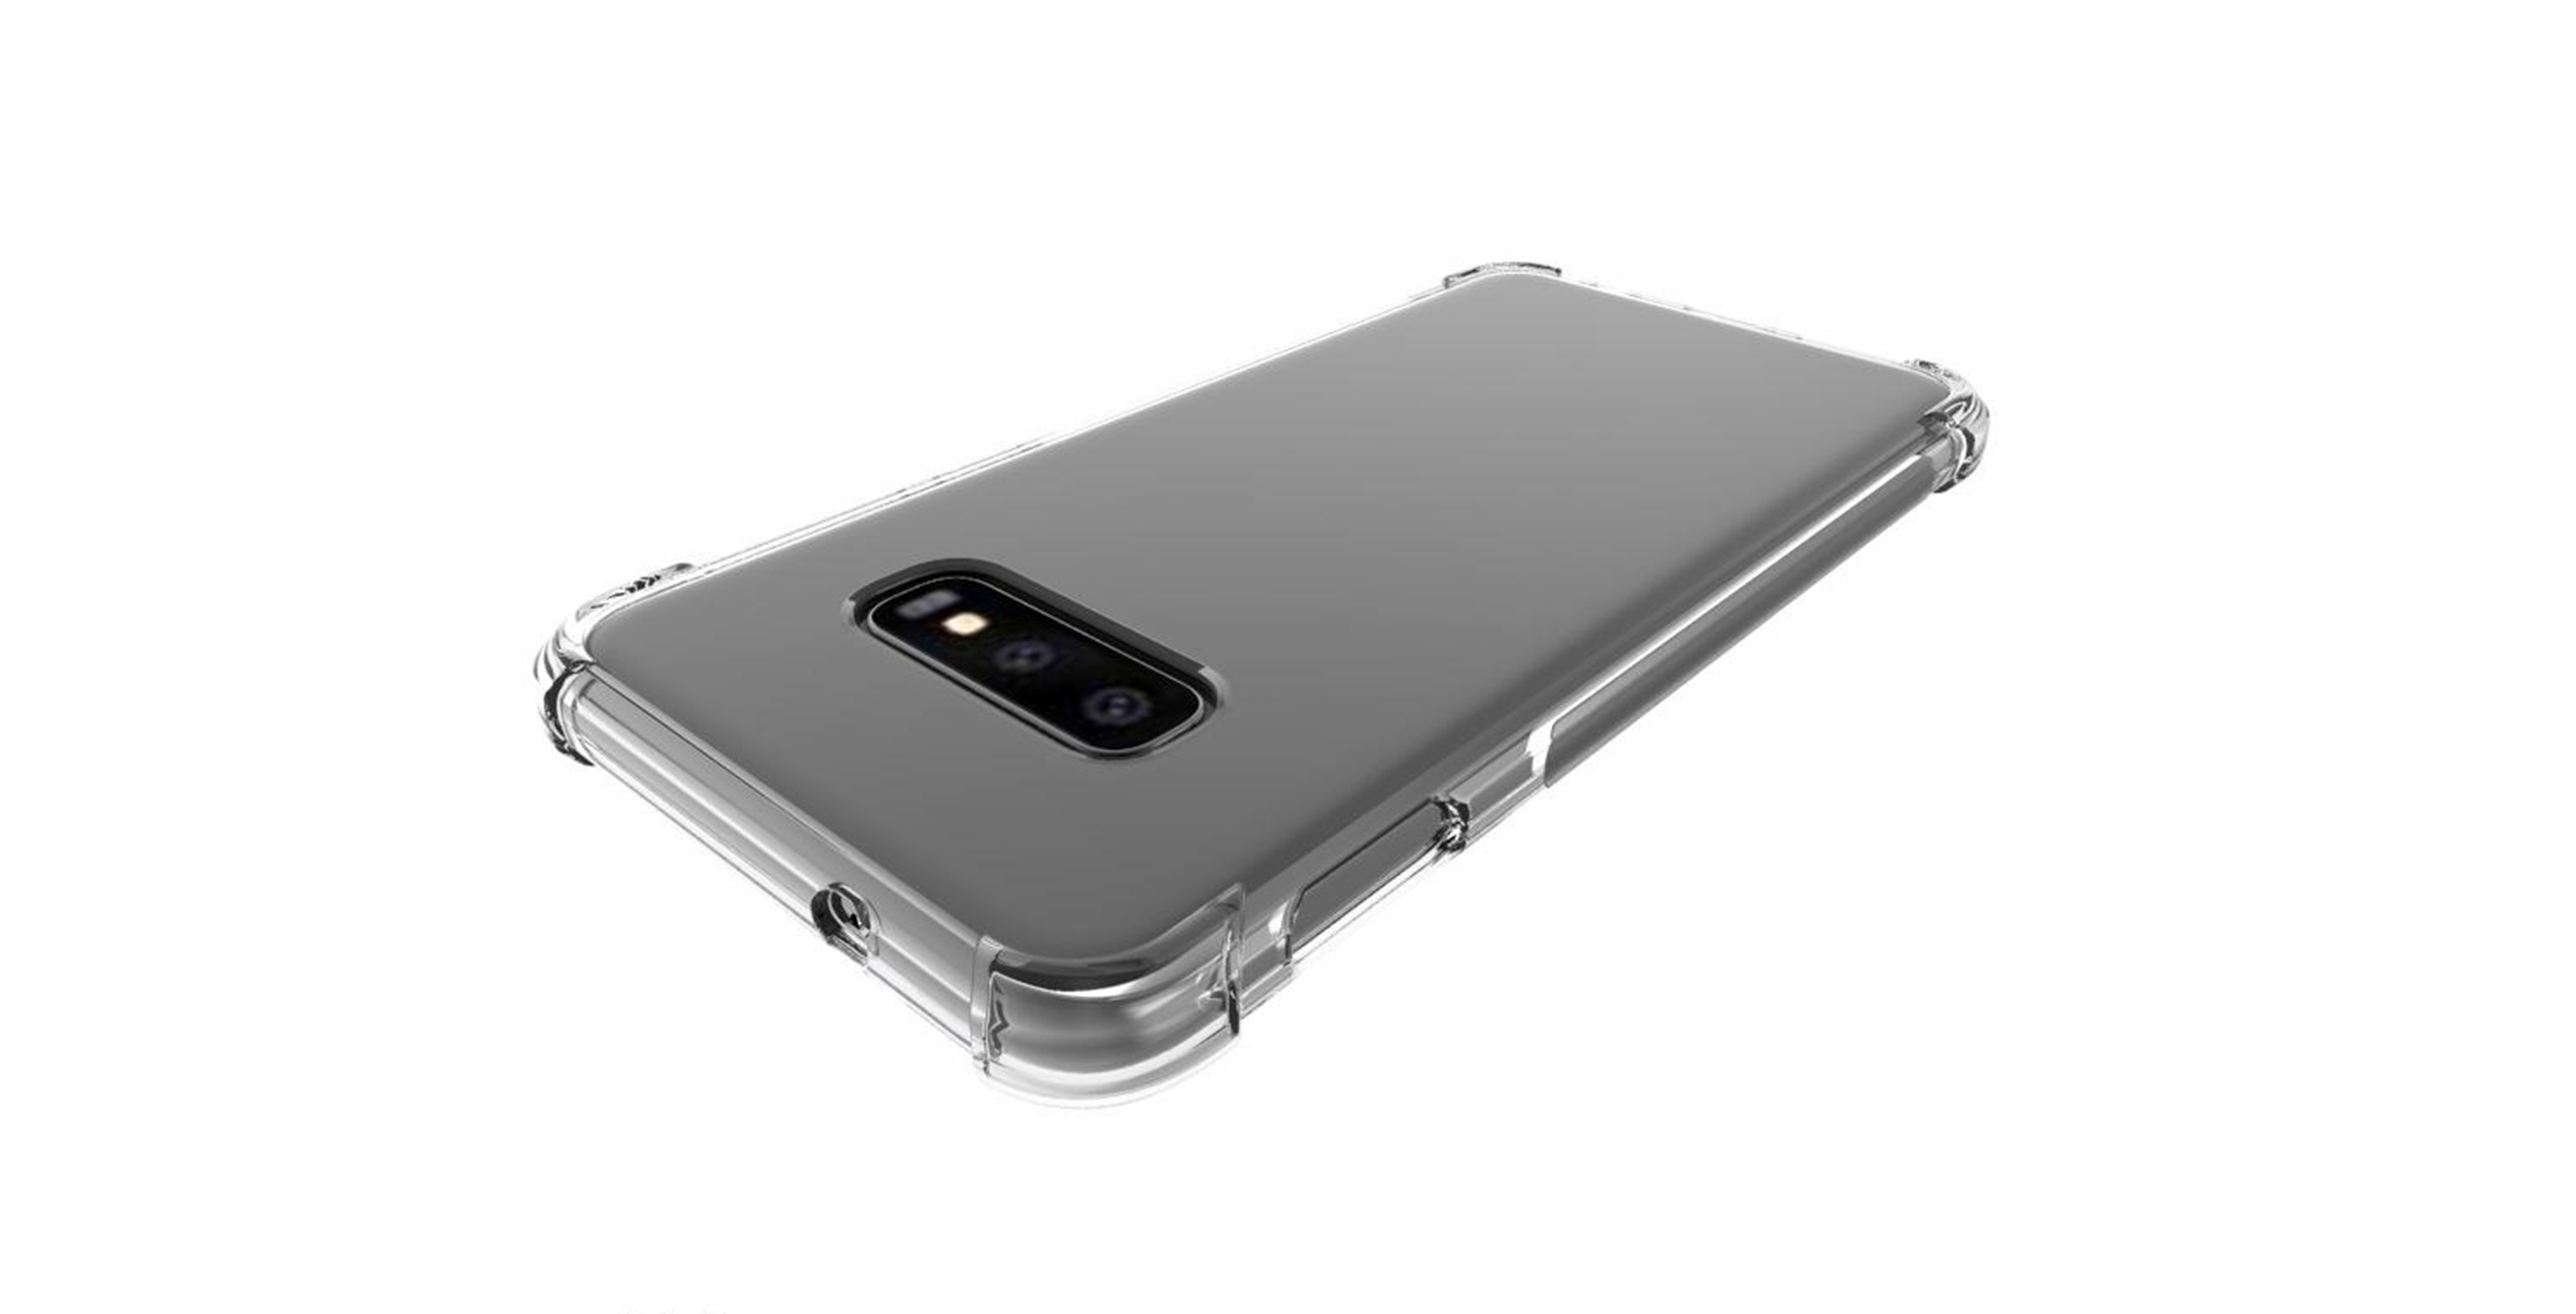 Samsung Galaxy S10 Lite case render